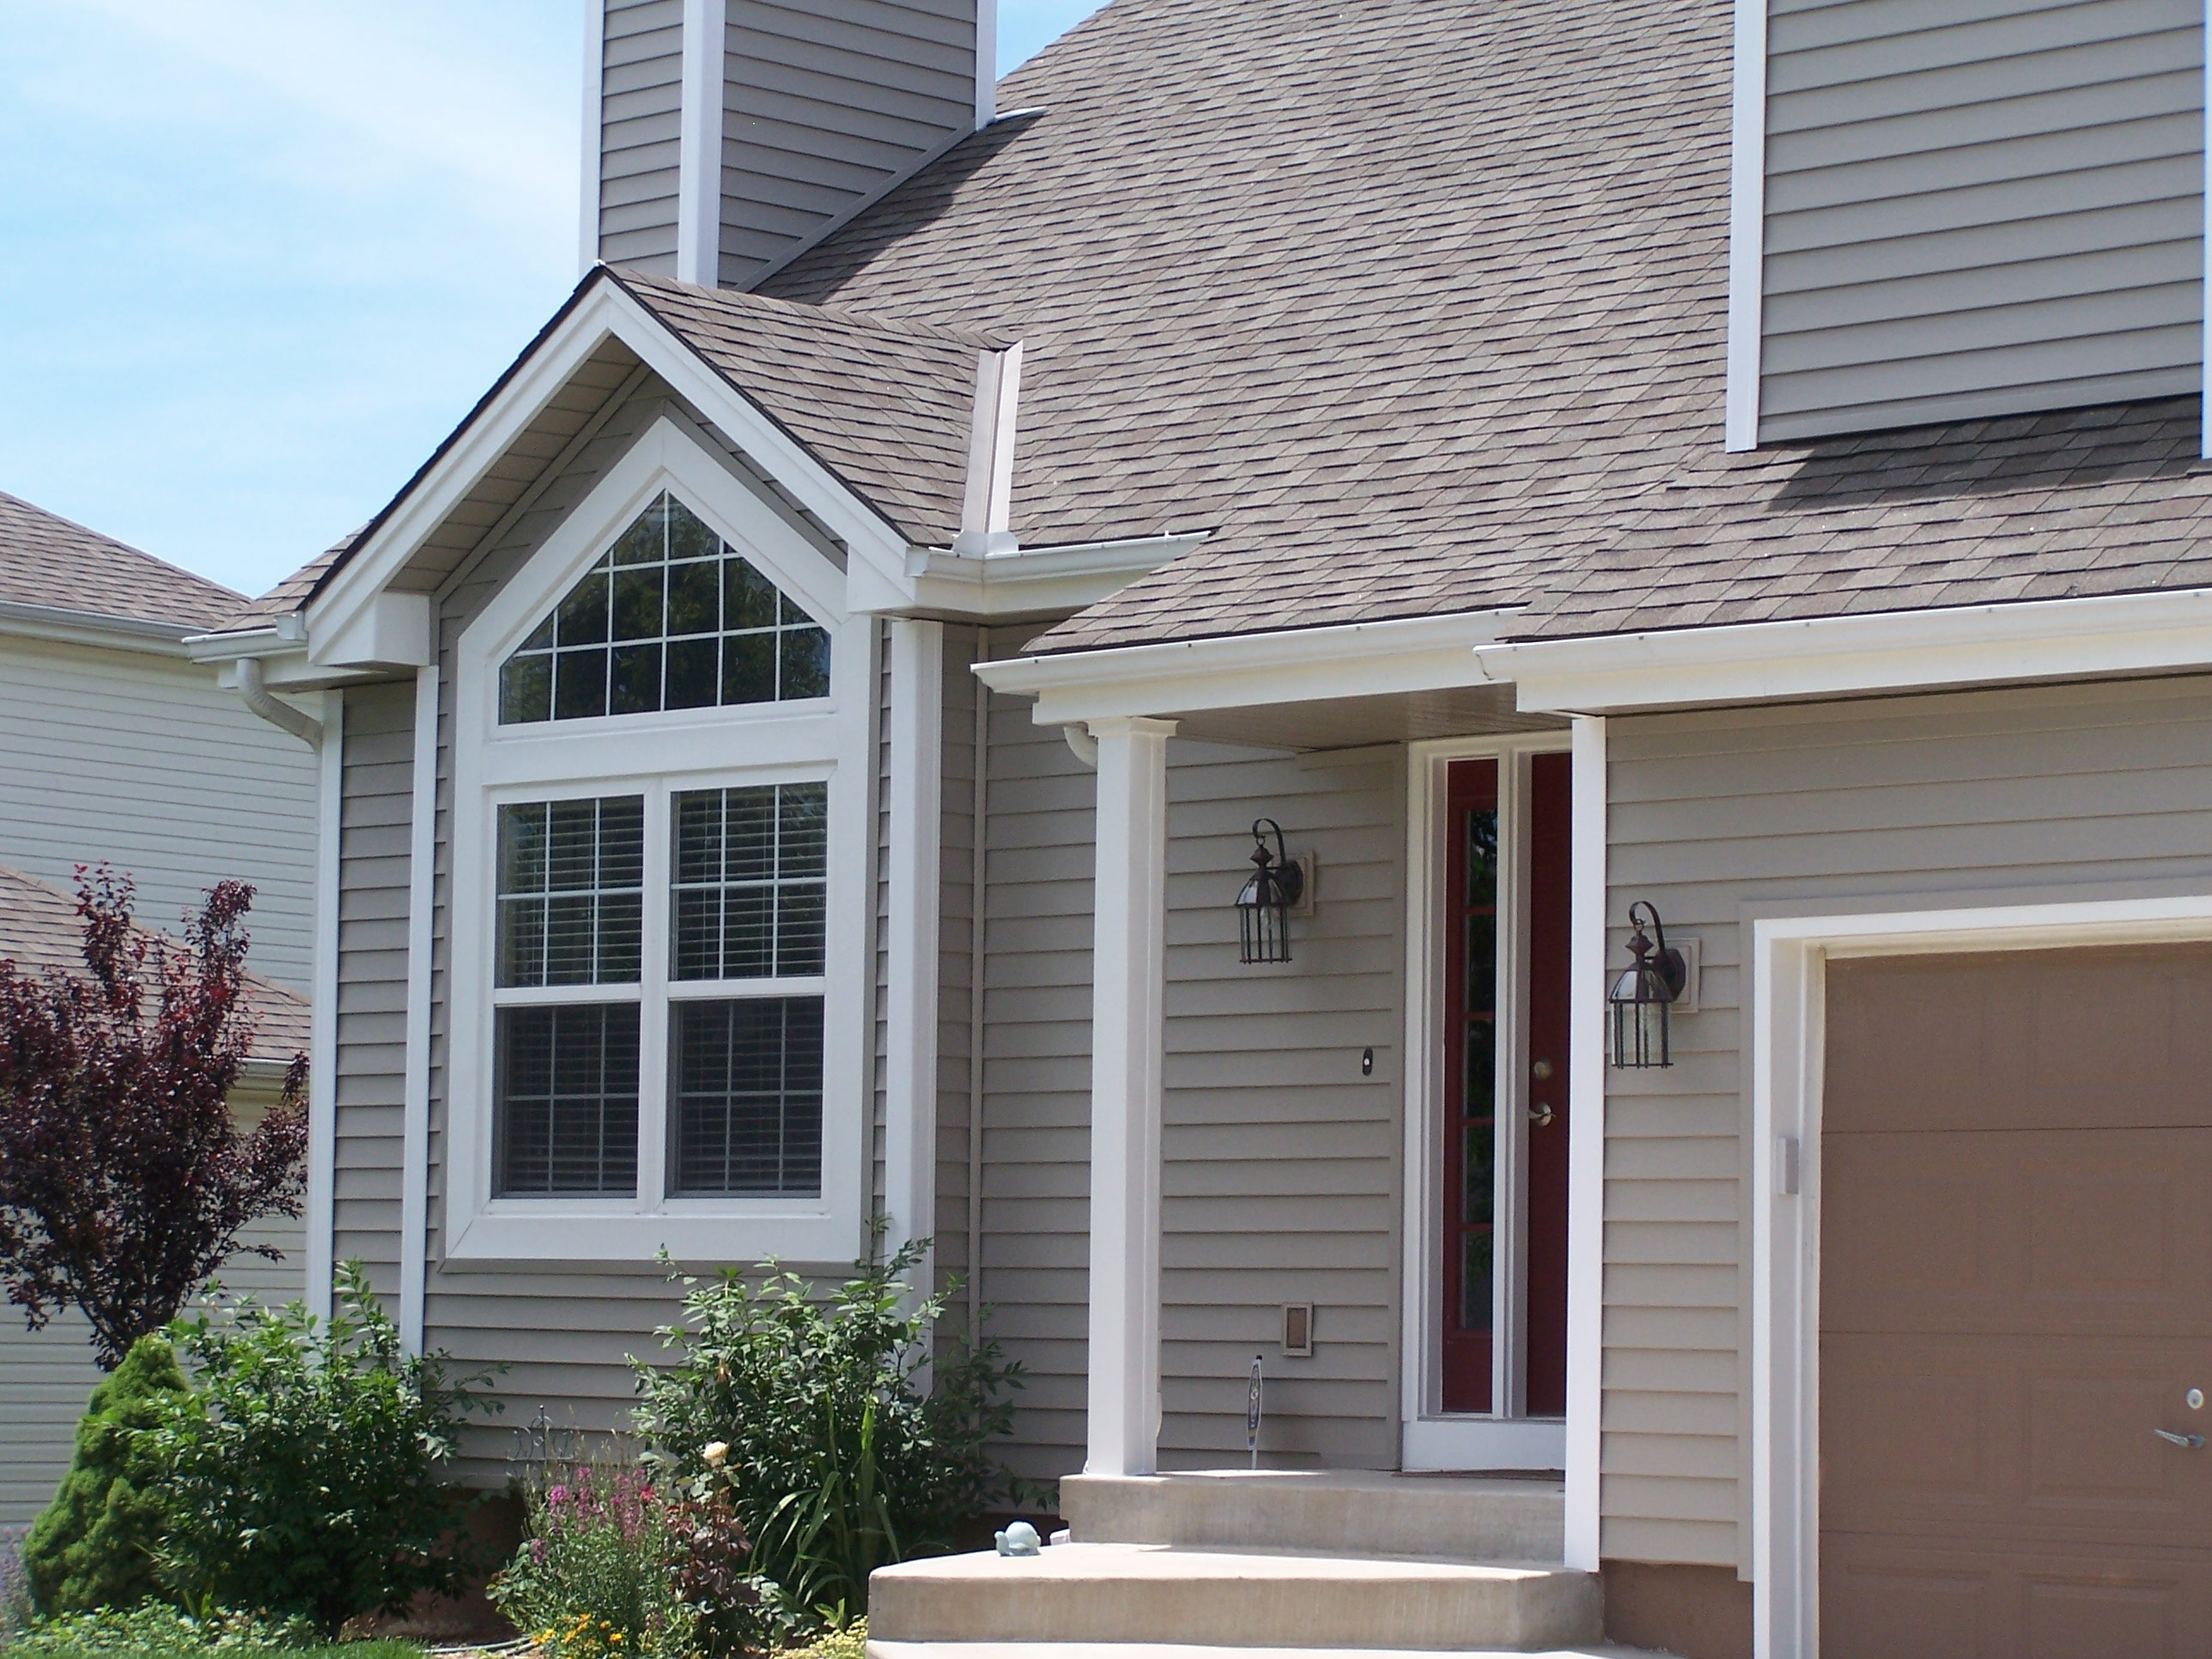 7 Popular Siding Materials To Consider: Siding Series 3: Choosing The Right Siding System